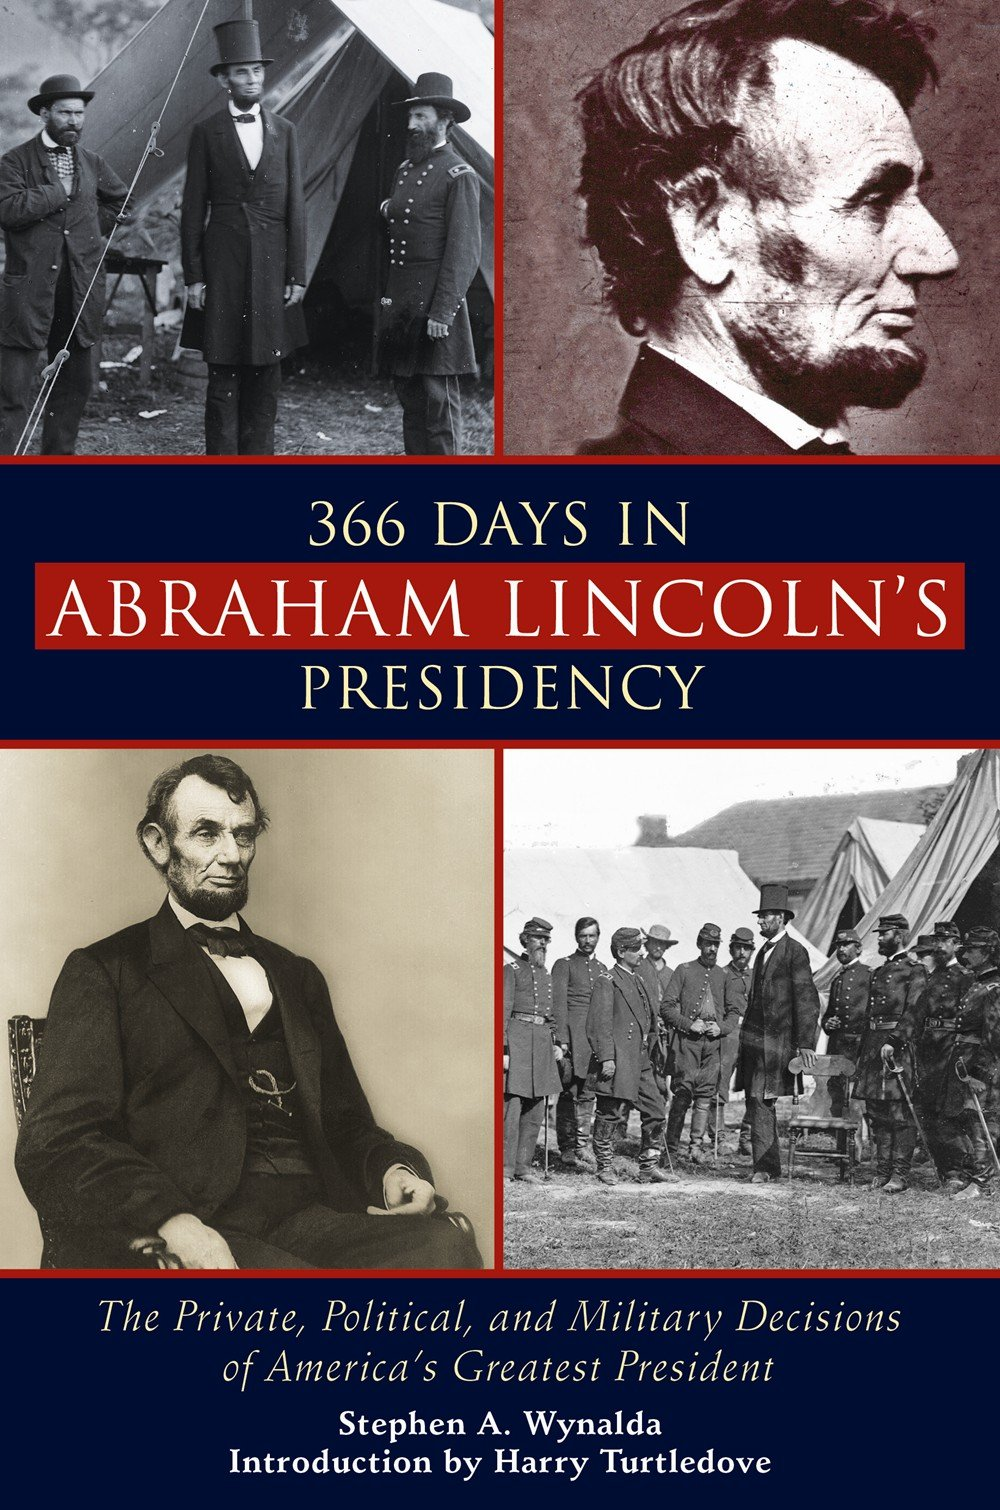 Read Online 366 Days in Abraham Lincoln's Presidency: The Private, Political, and Military Decisions of America's Greatest President Text fb2 book